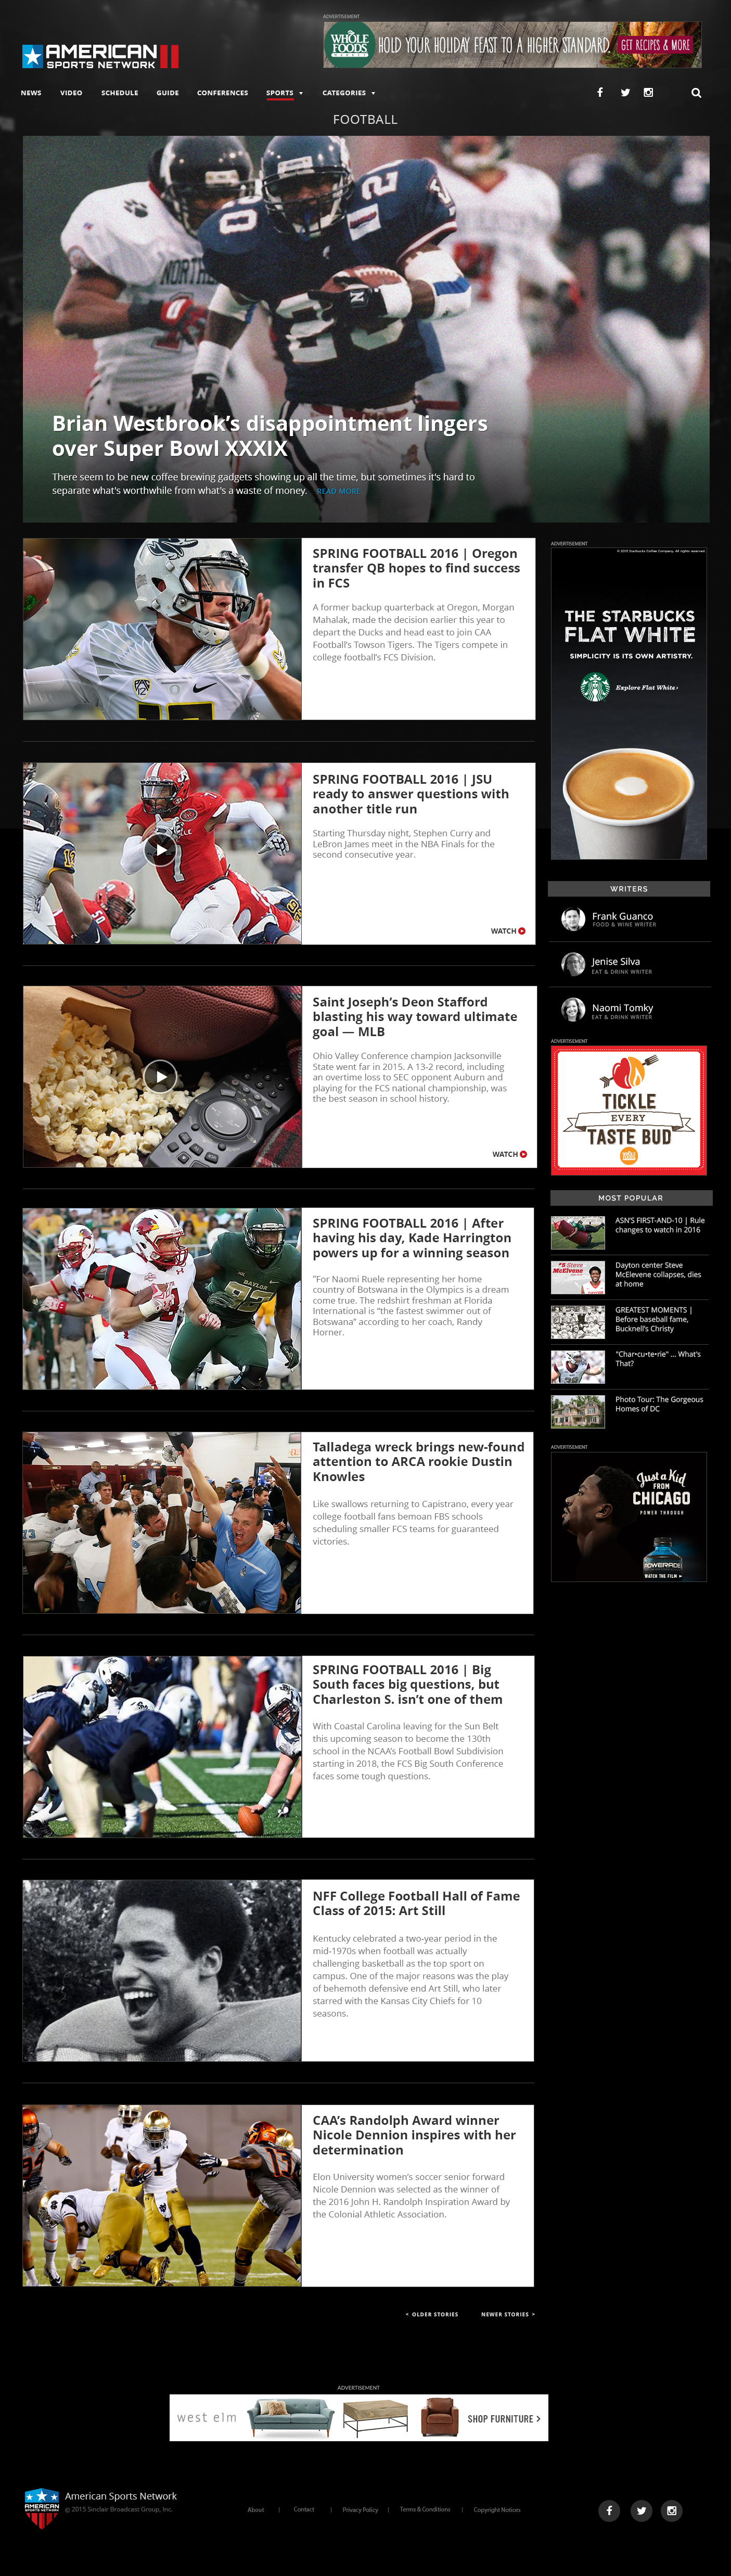 ASN-refined-FOOTBALL-section-page-desktop.png